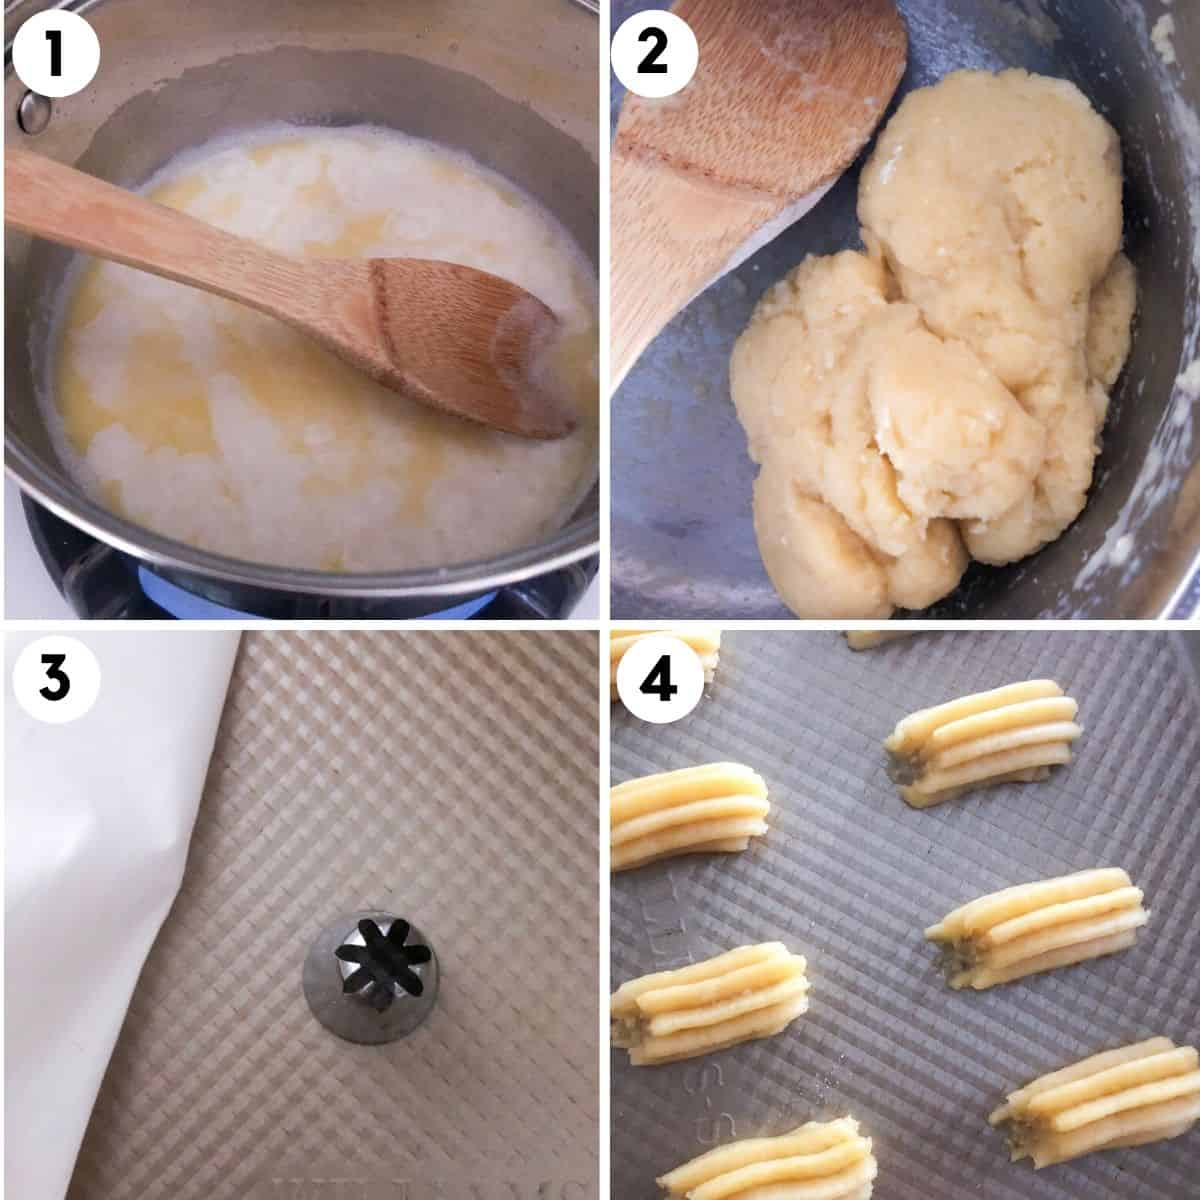 step by step guide showing how to make mini baked churros with a star tip